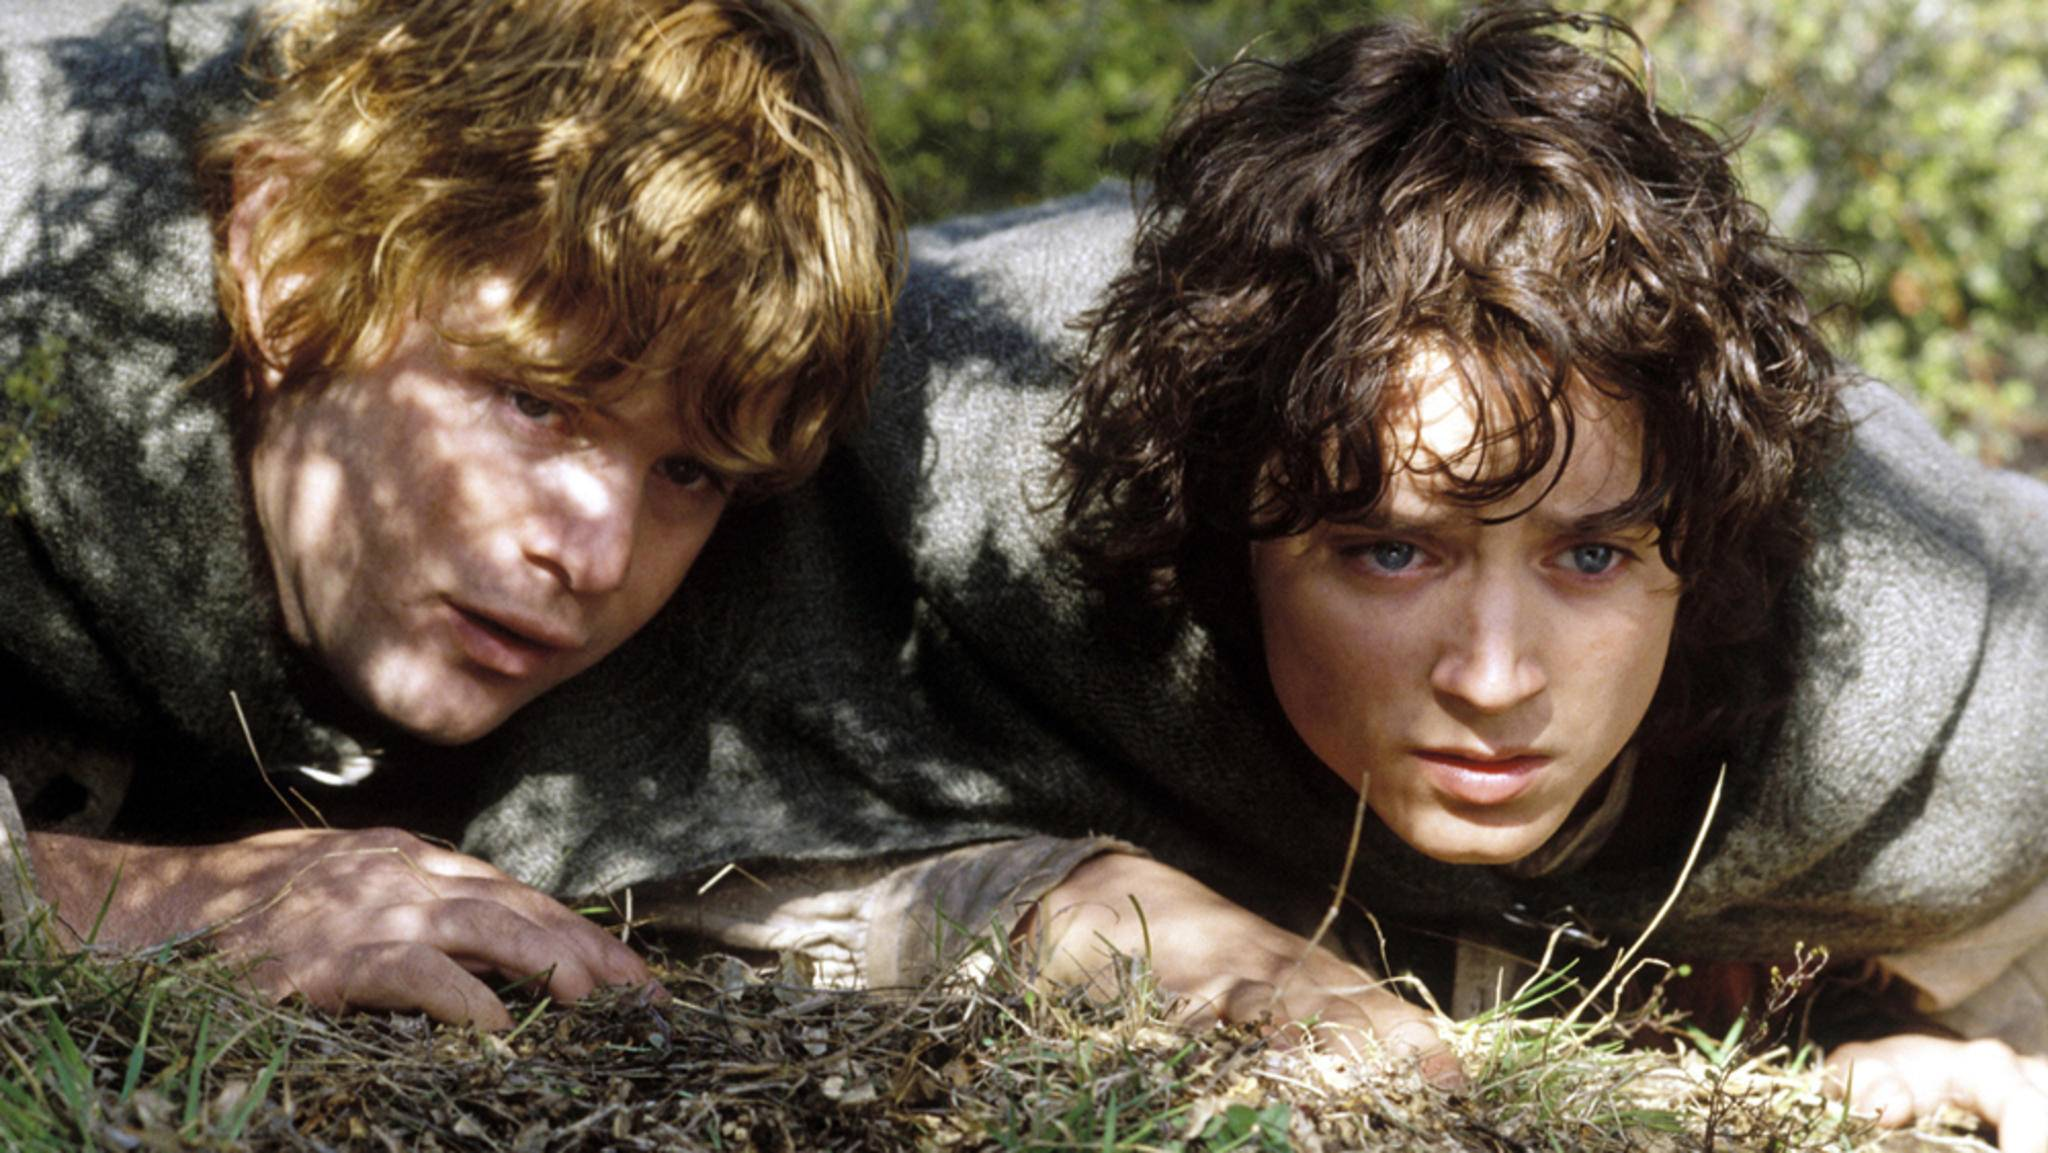 Herr der Ringe-Frodo-Sam-picture alliance-United Archives-85938811